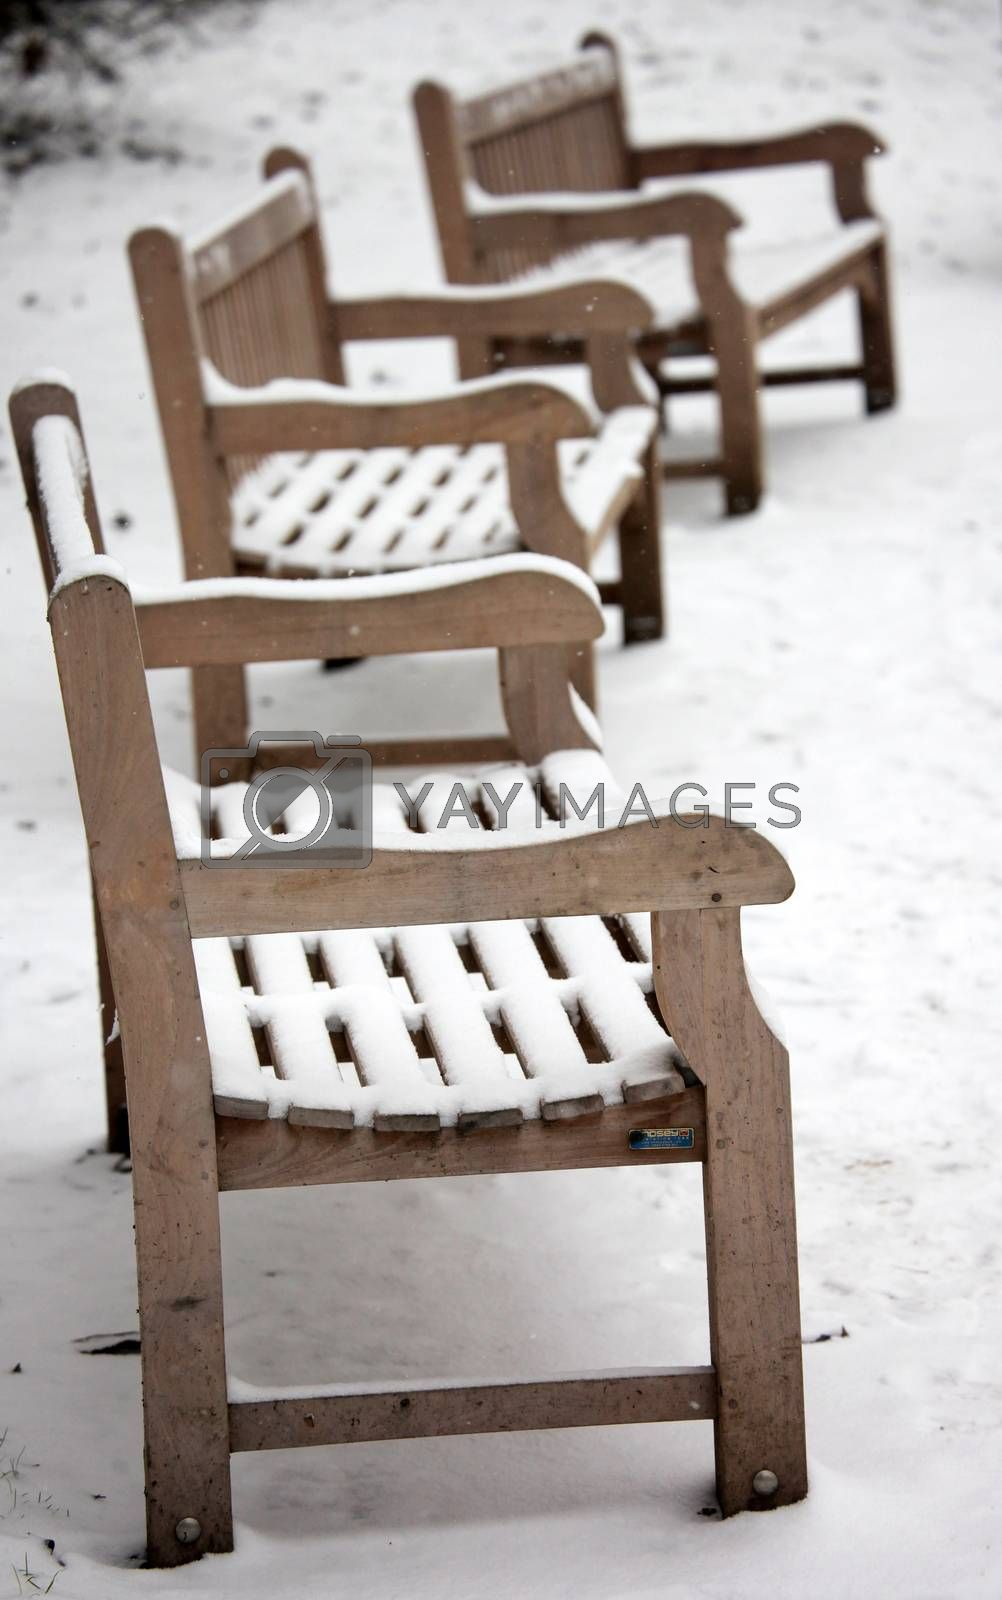 Three empty benches in the park on a cold winter day in London